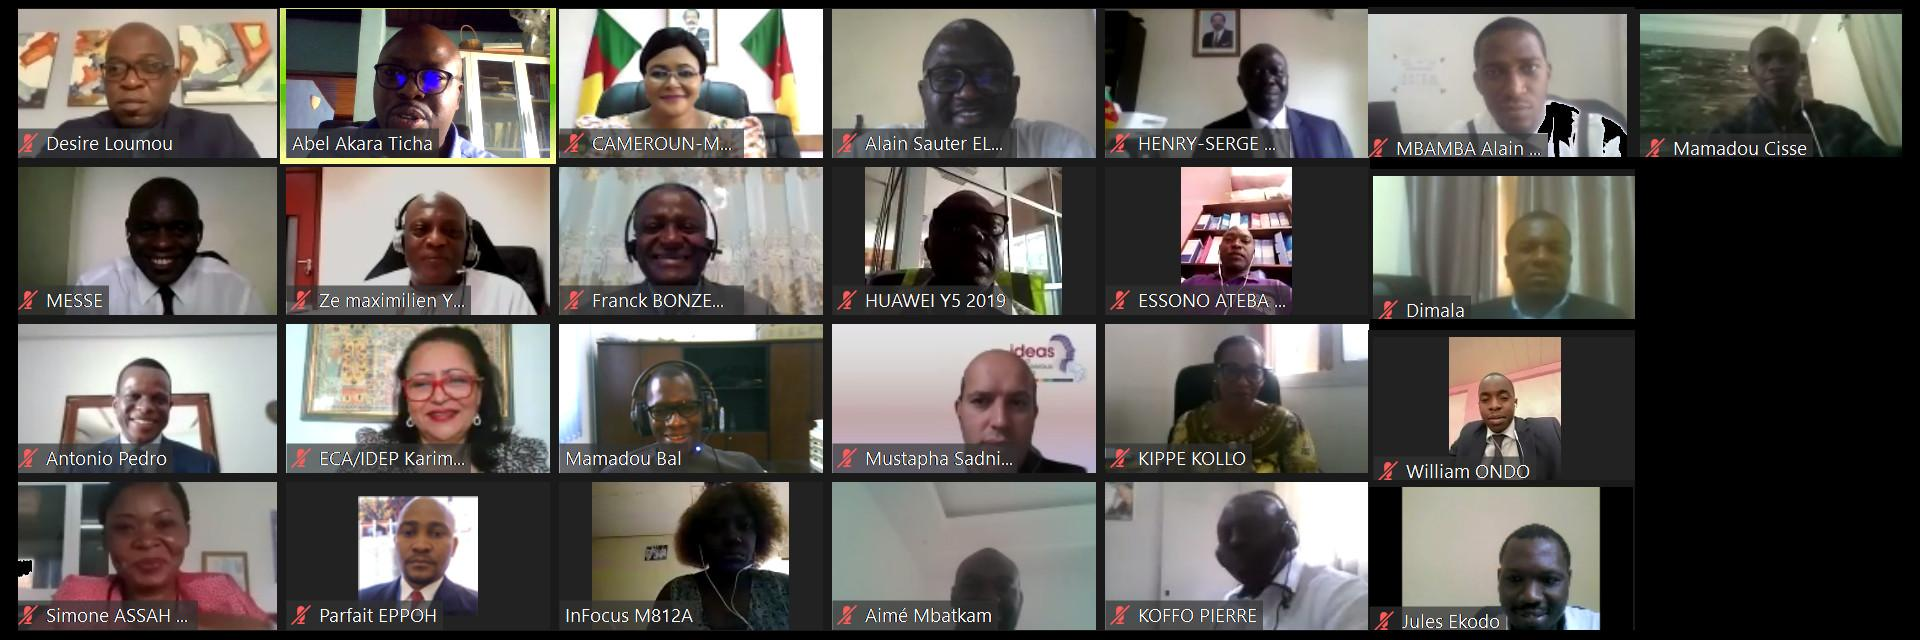 Cameroon: Private sector actors in session to fully understand the African common market